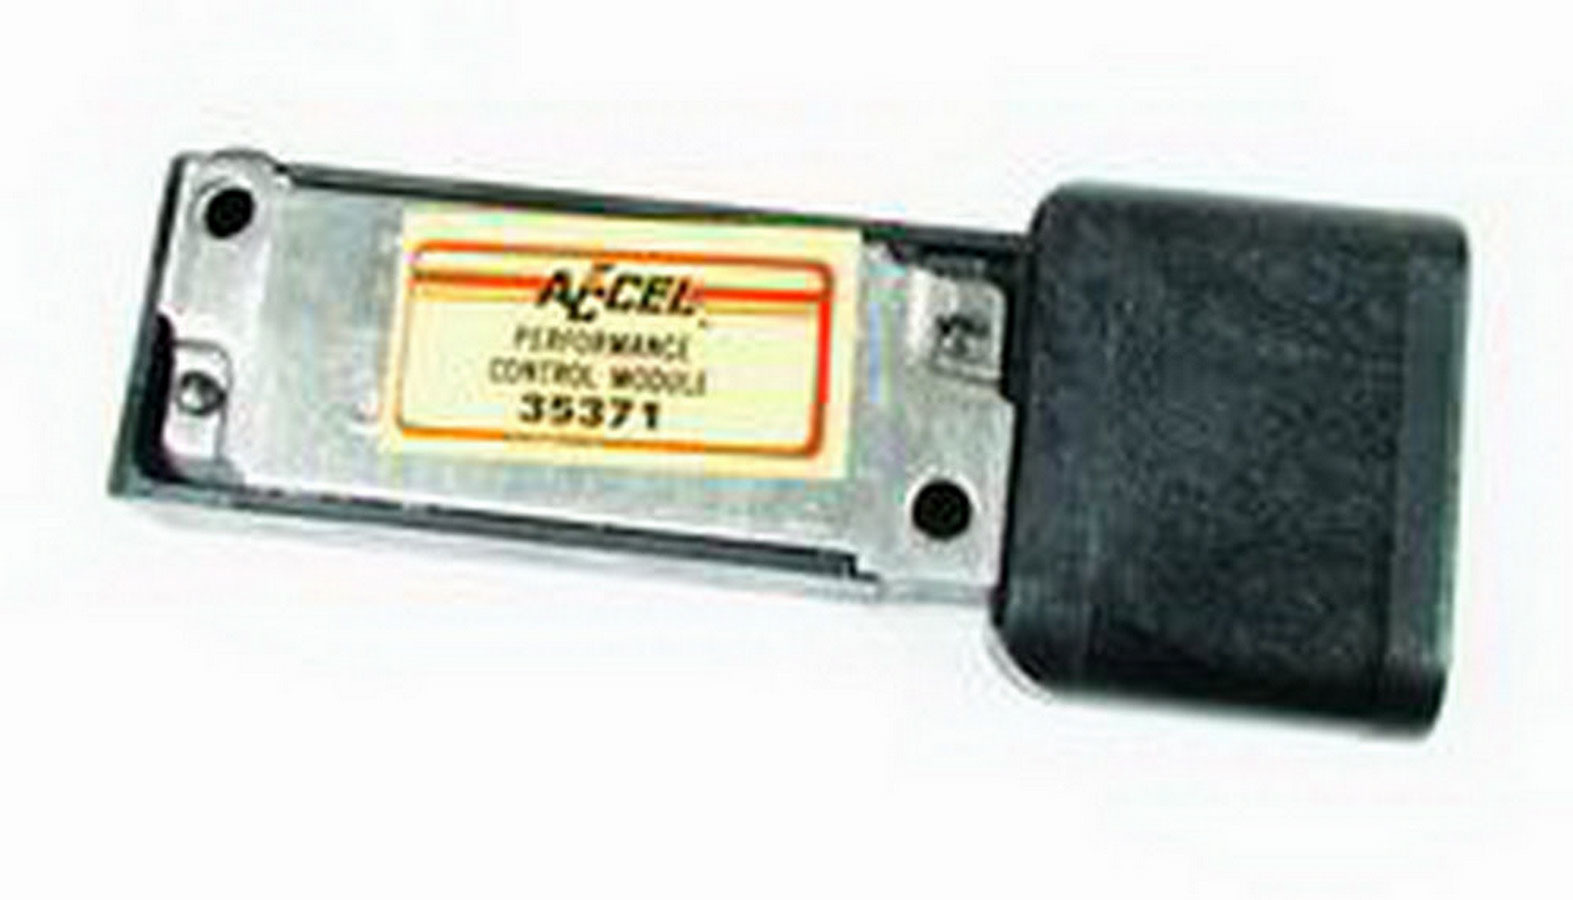 Accel 35371 Ignition Control Module, High Performance, Remote Mounted, Ford TFI 1991-95, Each